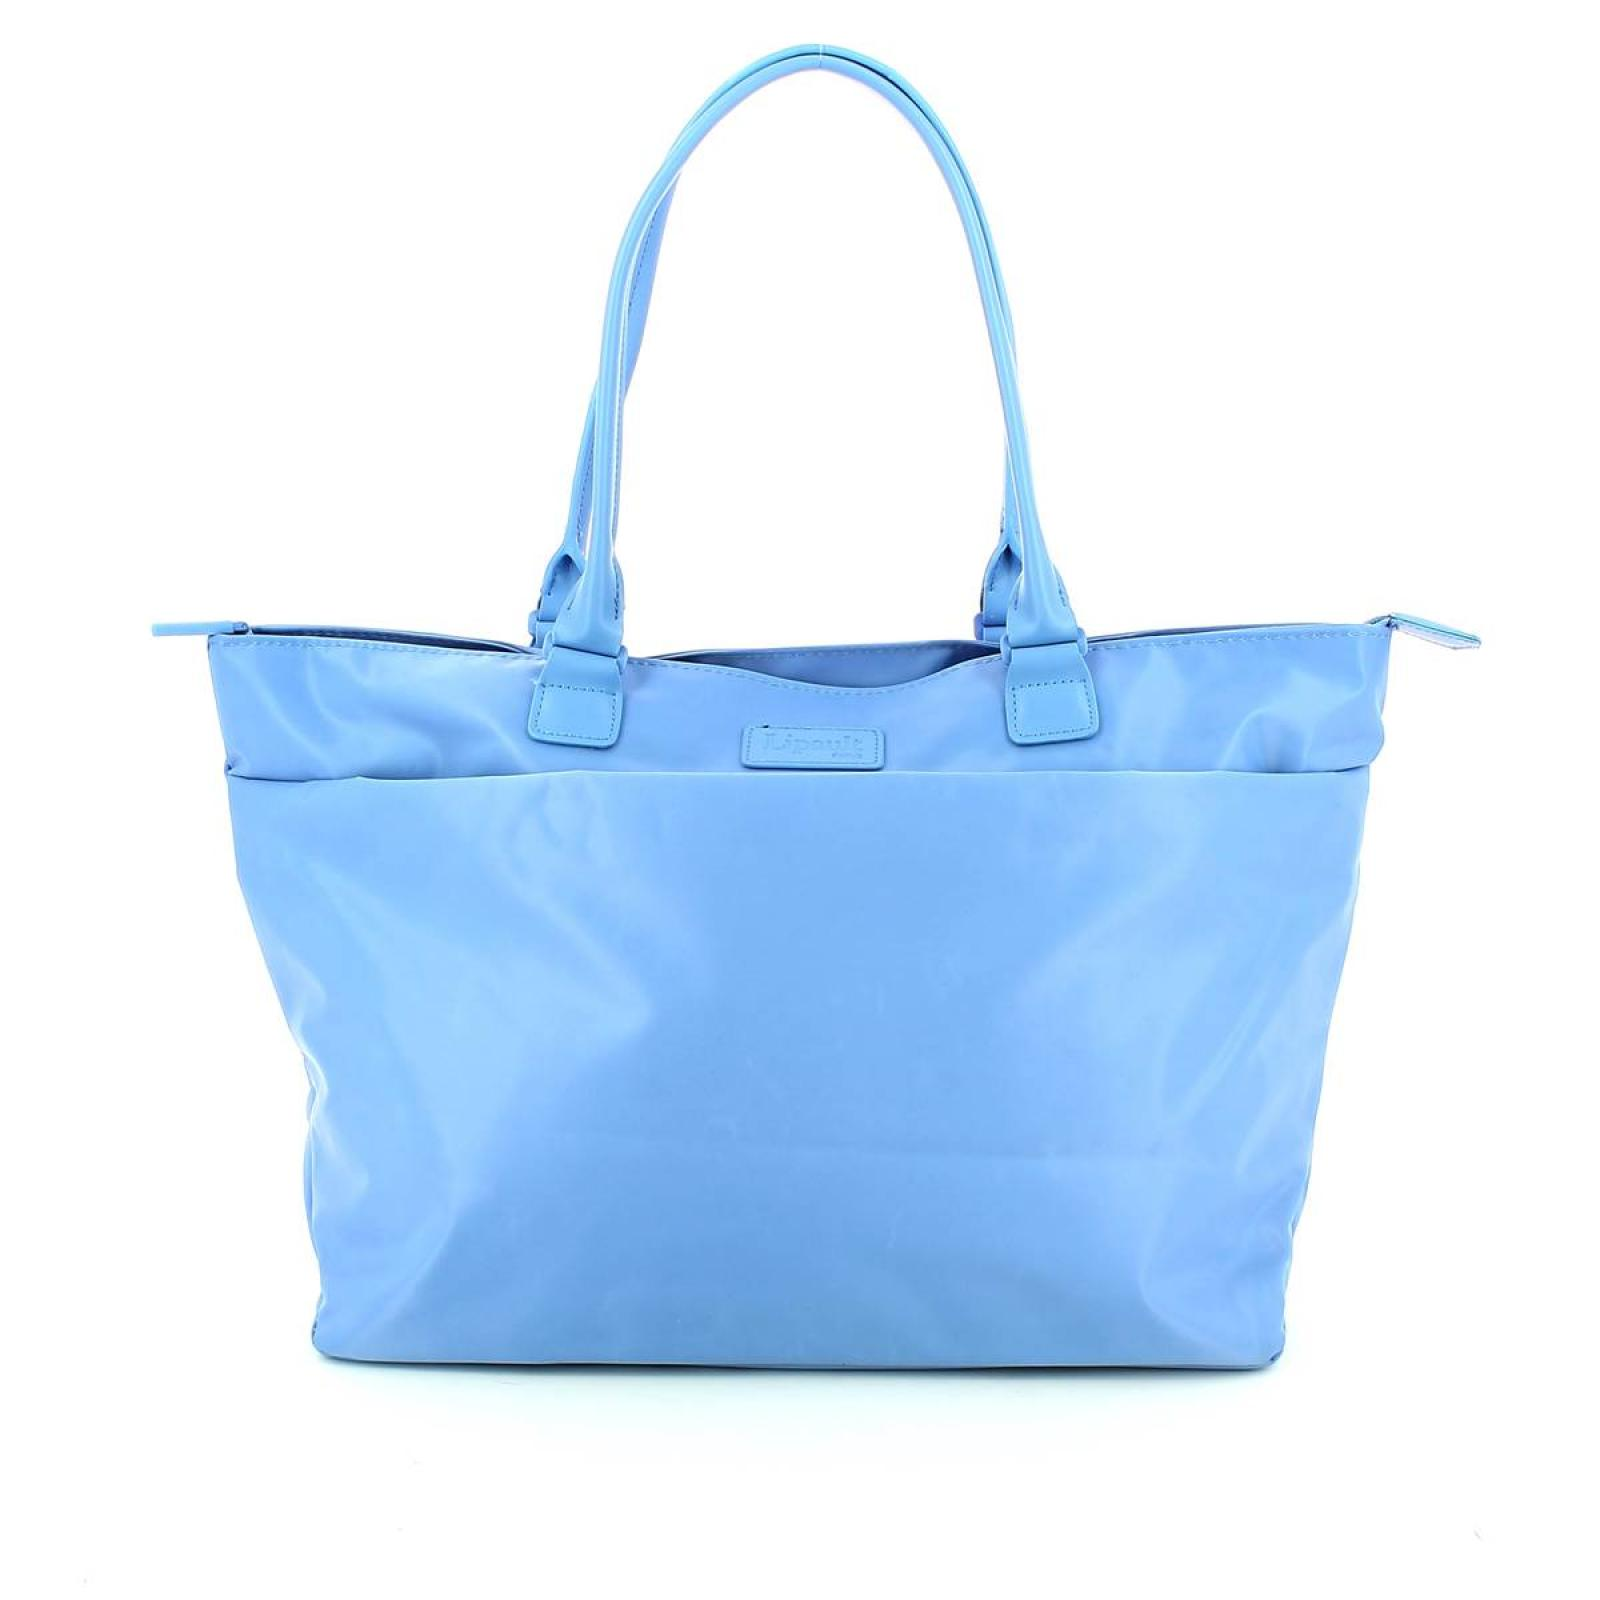 SHOPPING BAG ORIGINALE PLUME P53015